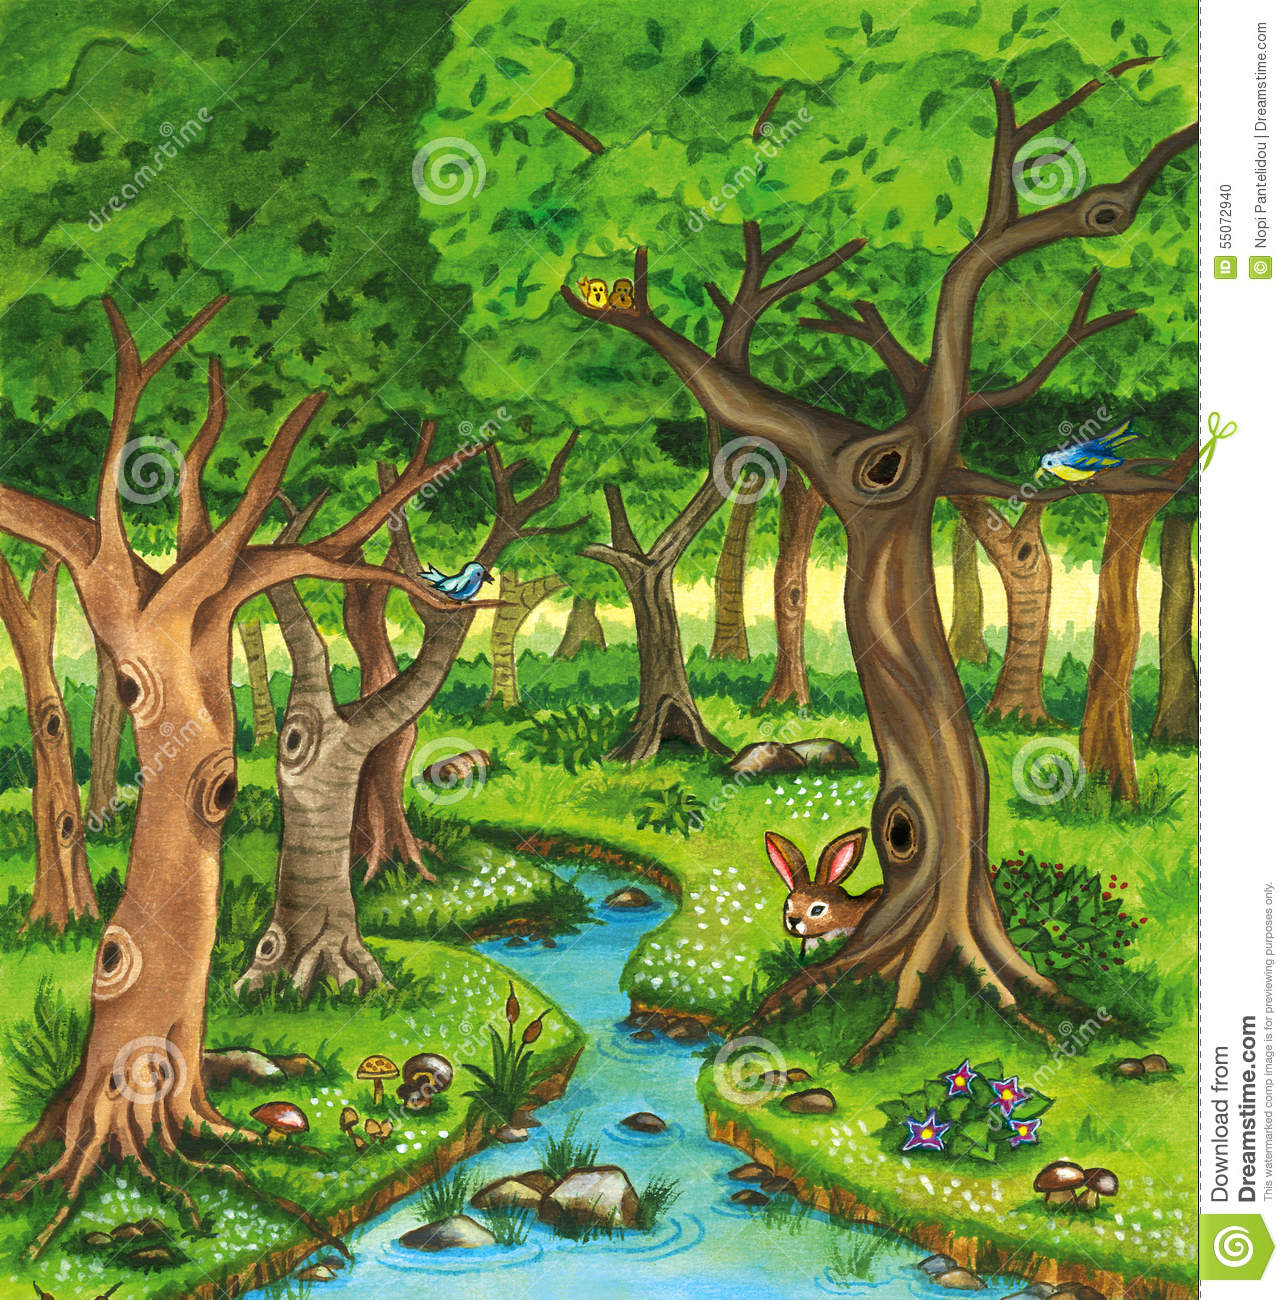 Colorful Animal Print Wallpaper Forest Watercolor Illustration With Trees And River Stock